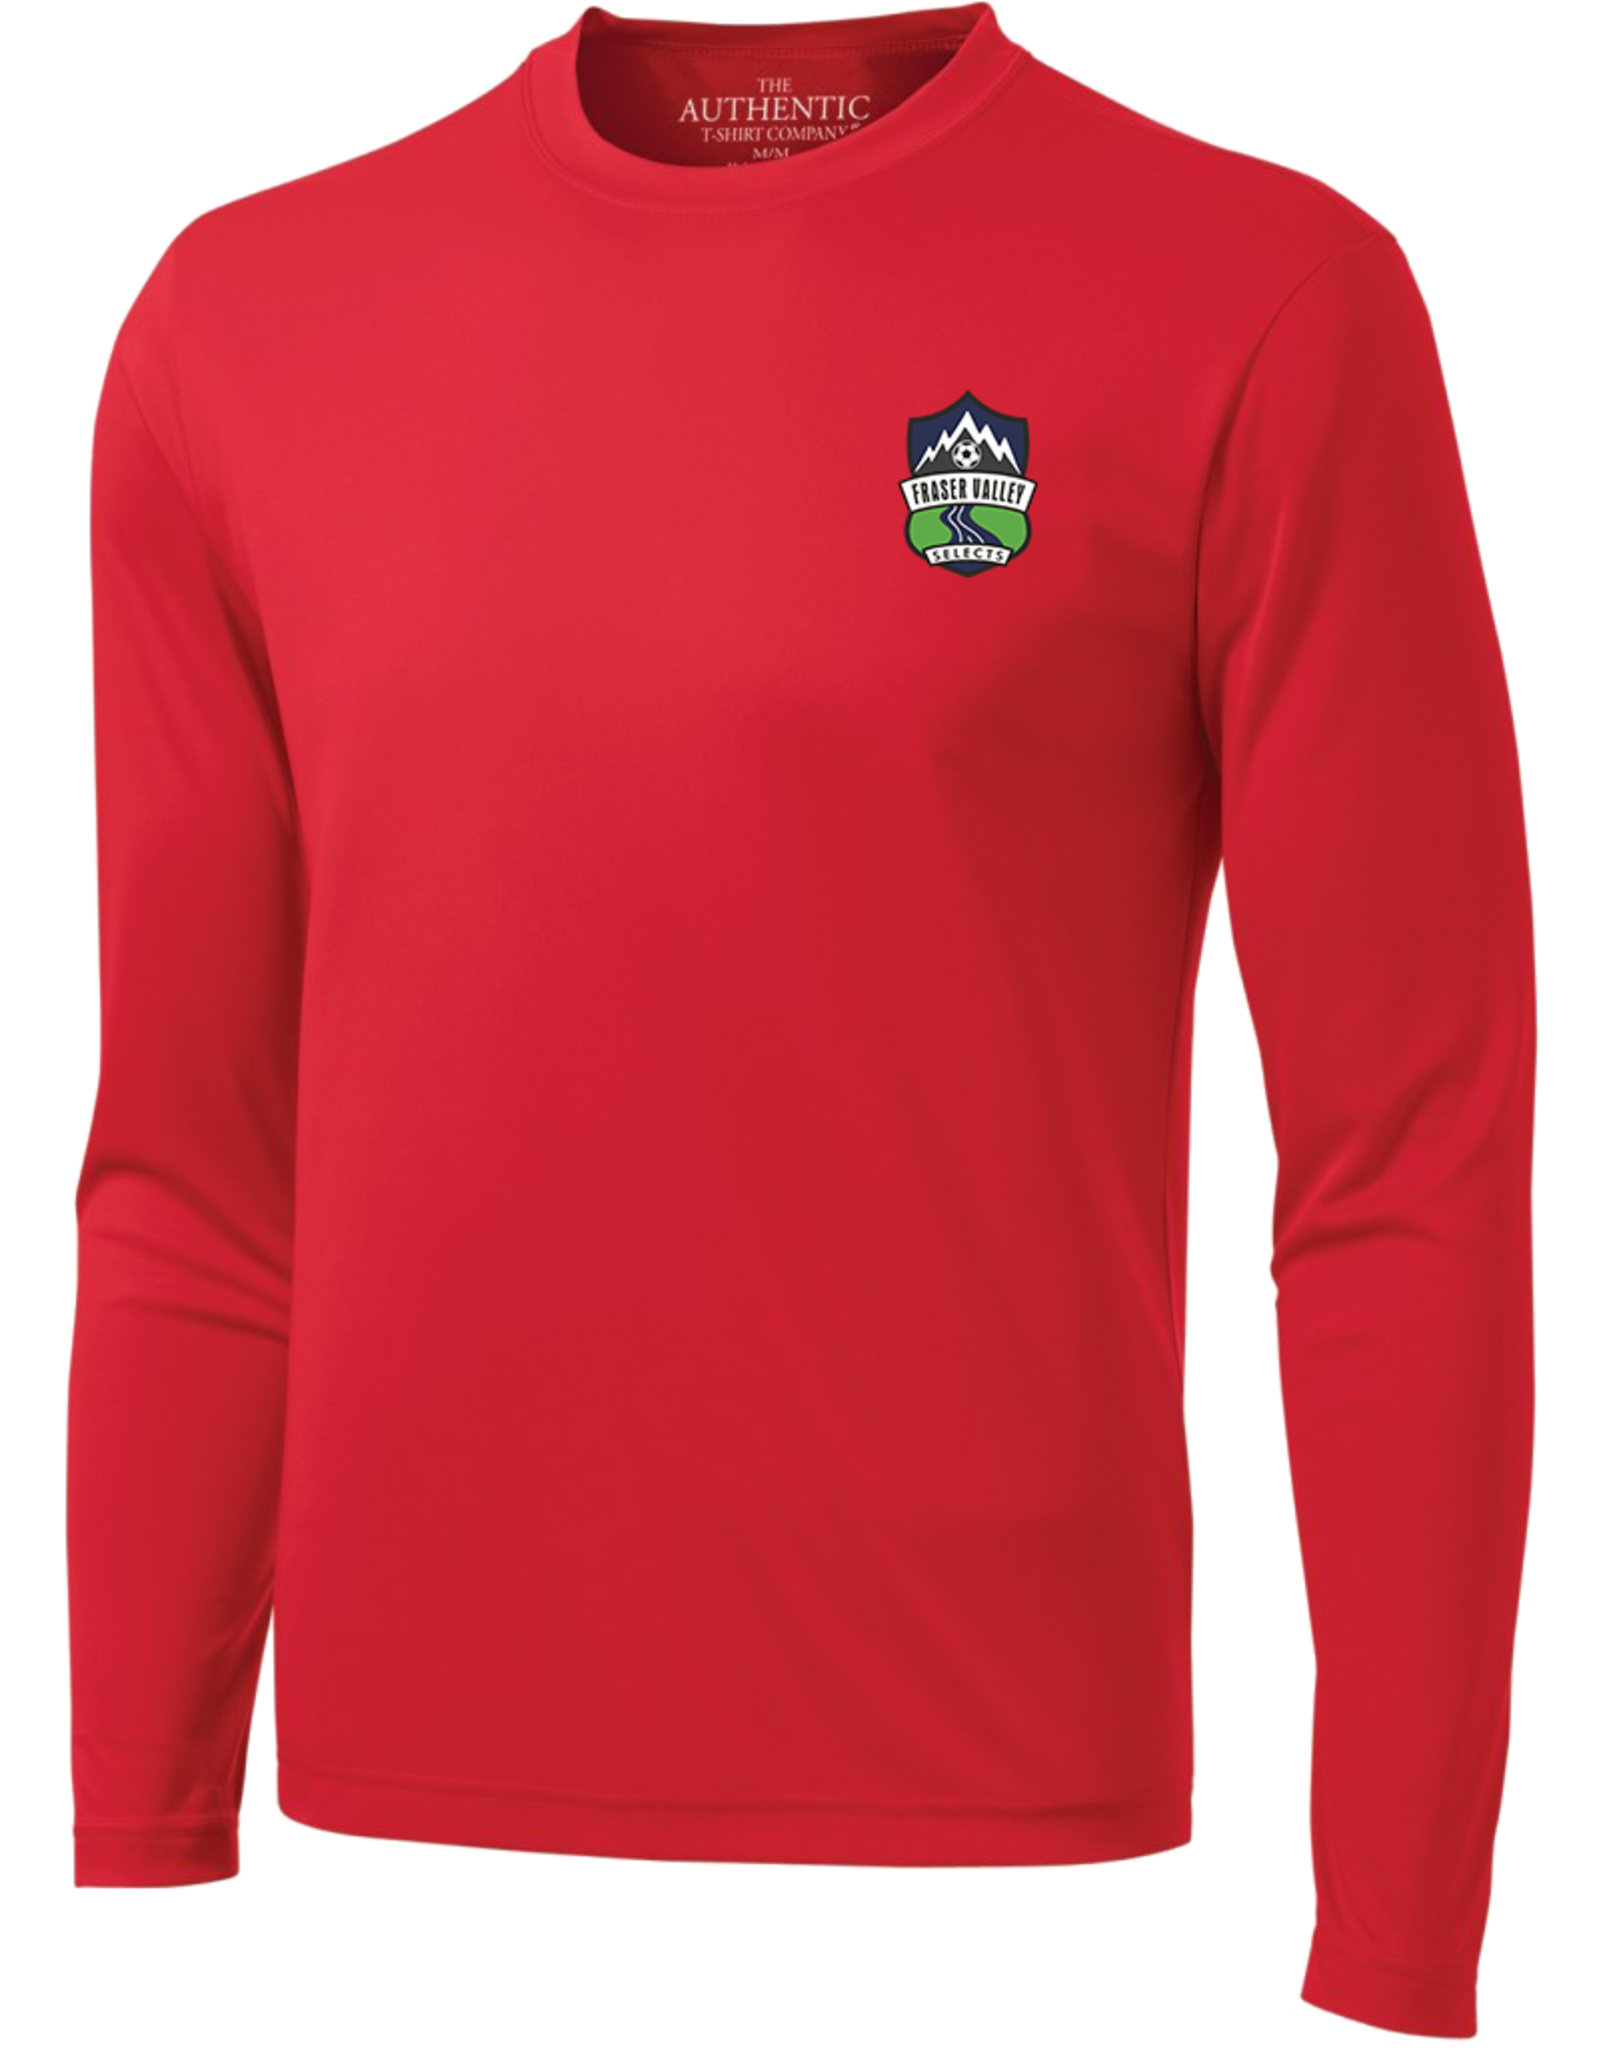 The Authentic T-Shirt Company RED GK LS TRAINING TOP